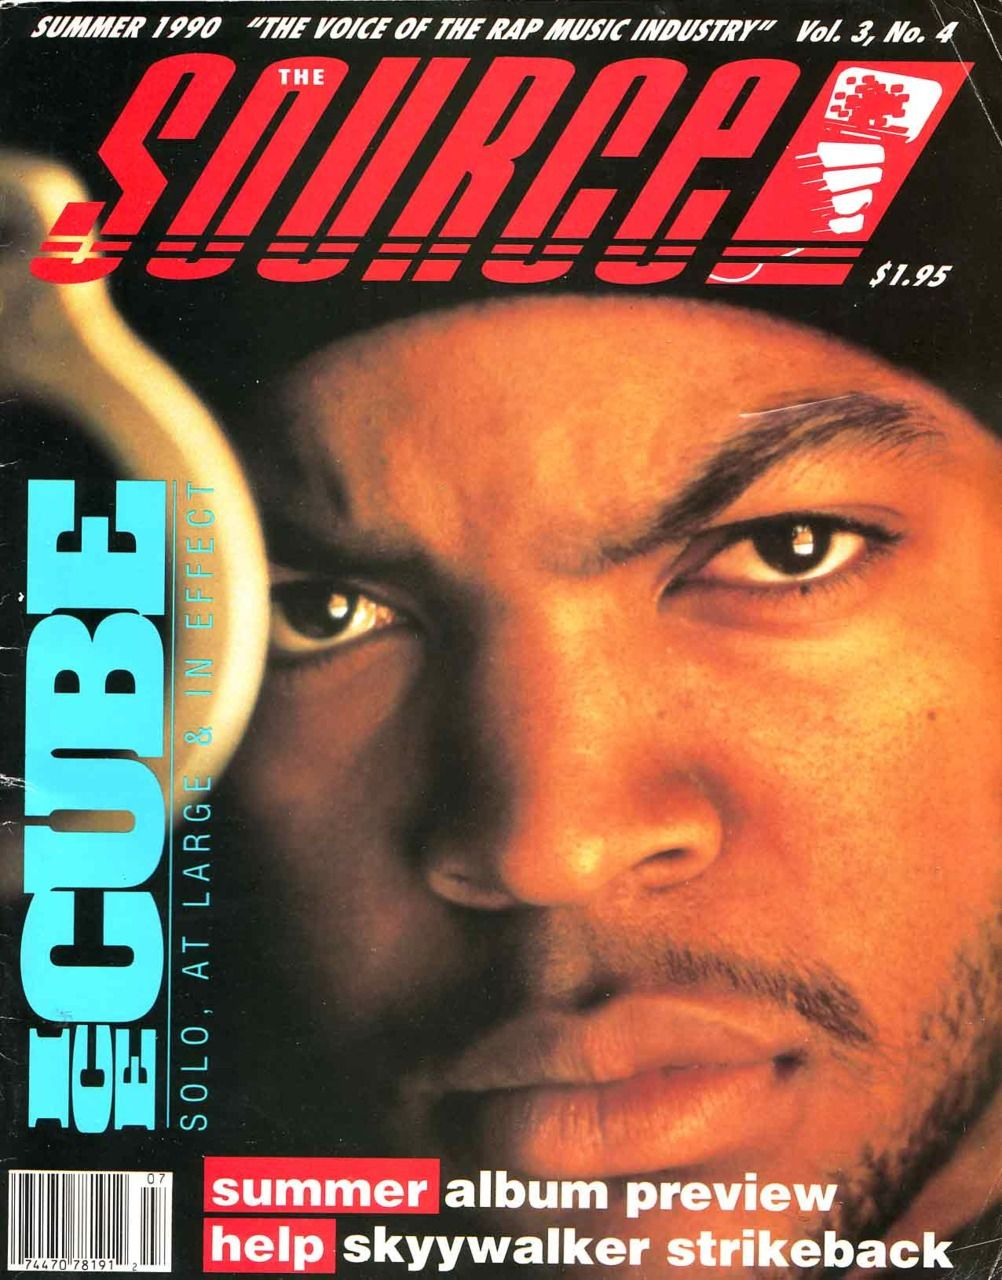 Ice Cube Cover Photo Minimalist the source (summer 1990) featuring ice cube | hip-hop magazines